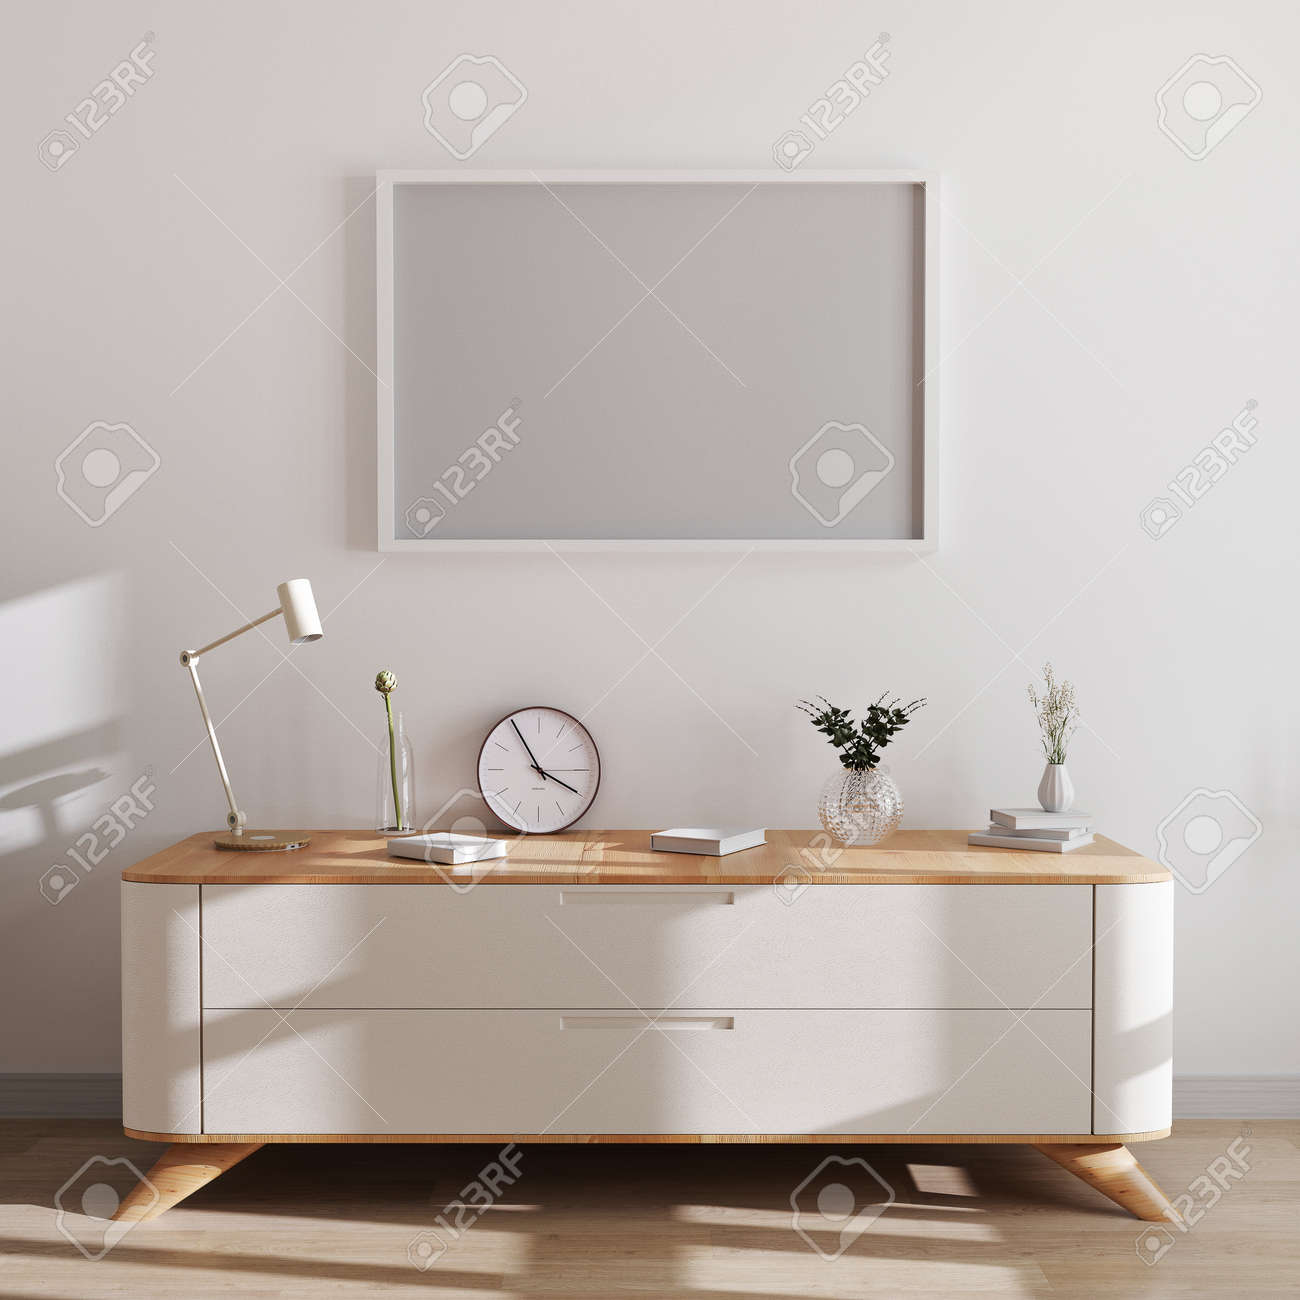 Horizontal frame mockup in modern interior background. Empty frames above white chest of drawers with beautiful decor. Scandinavian style, frame mockup, 3d rendering - 155406359